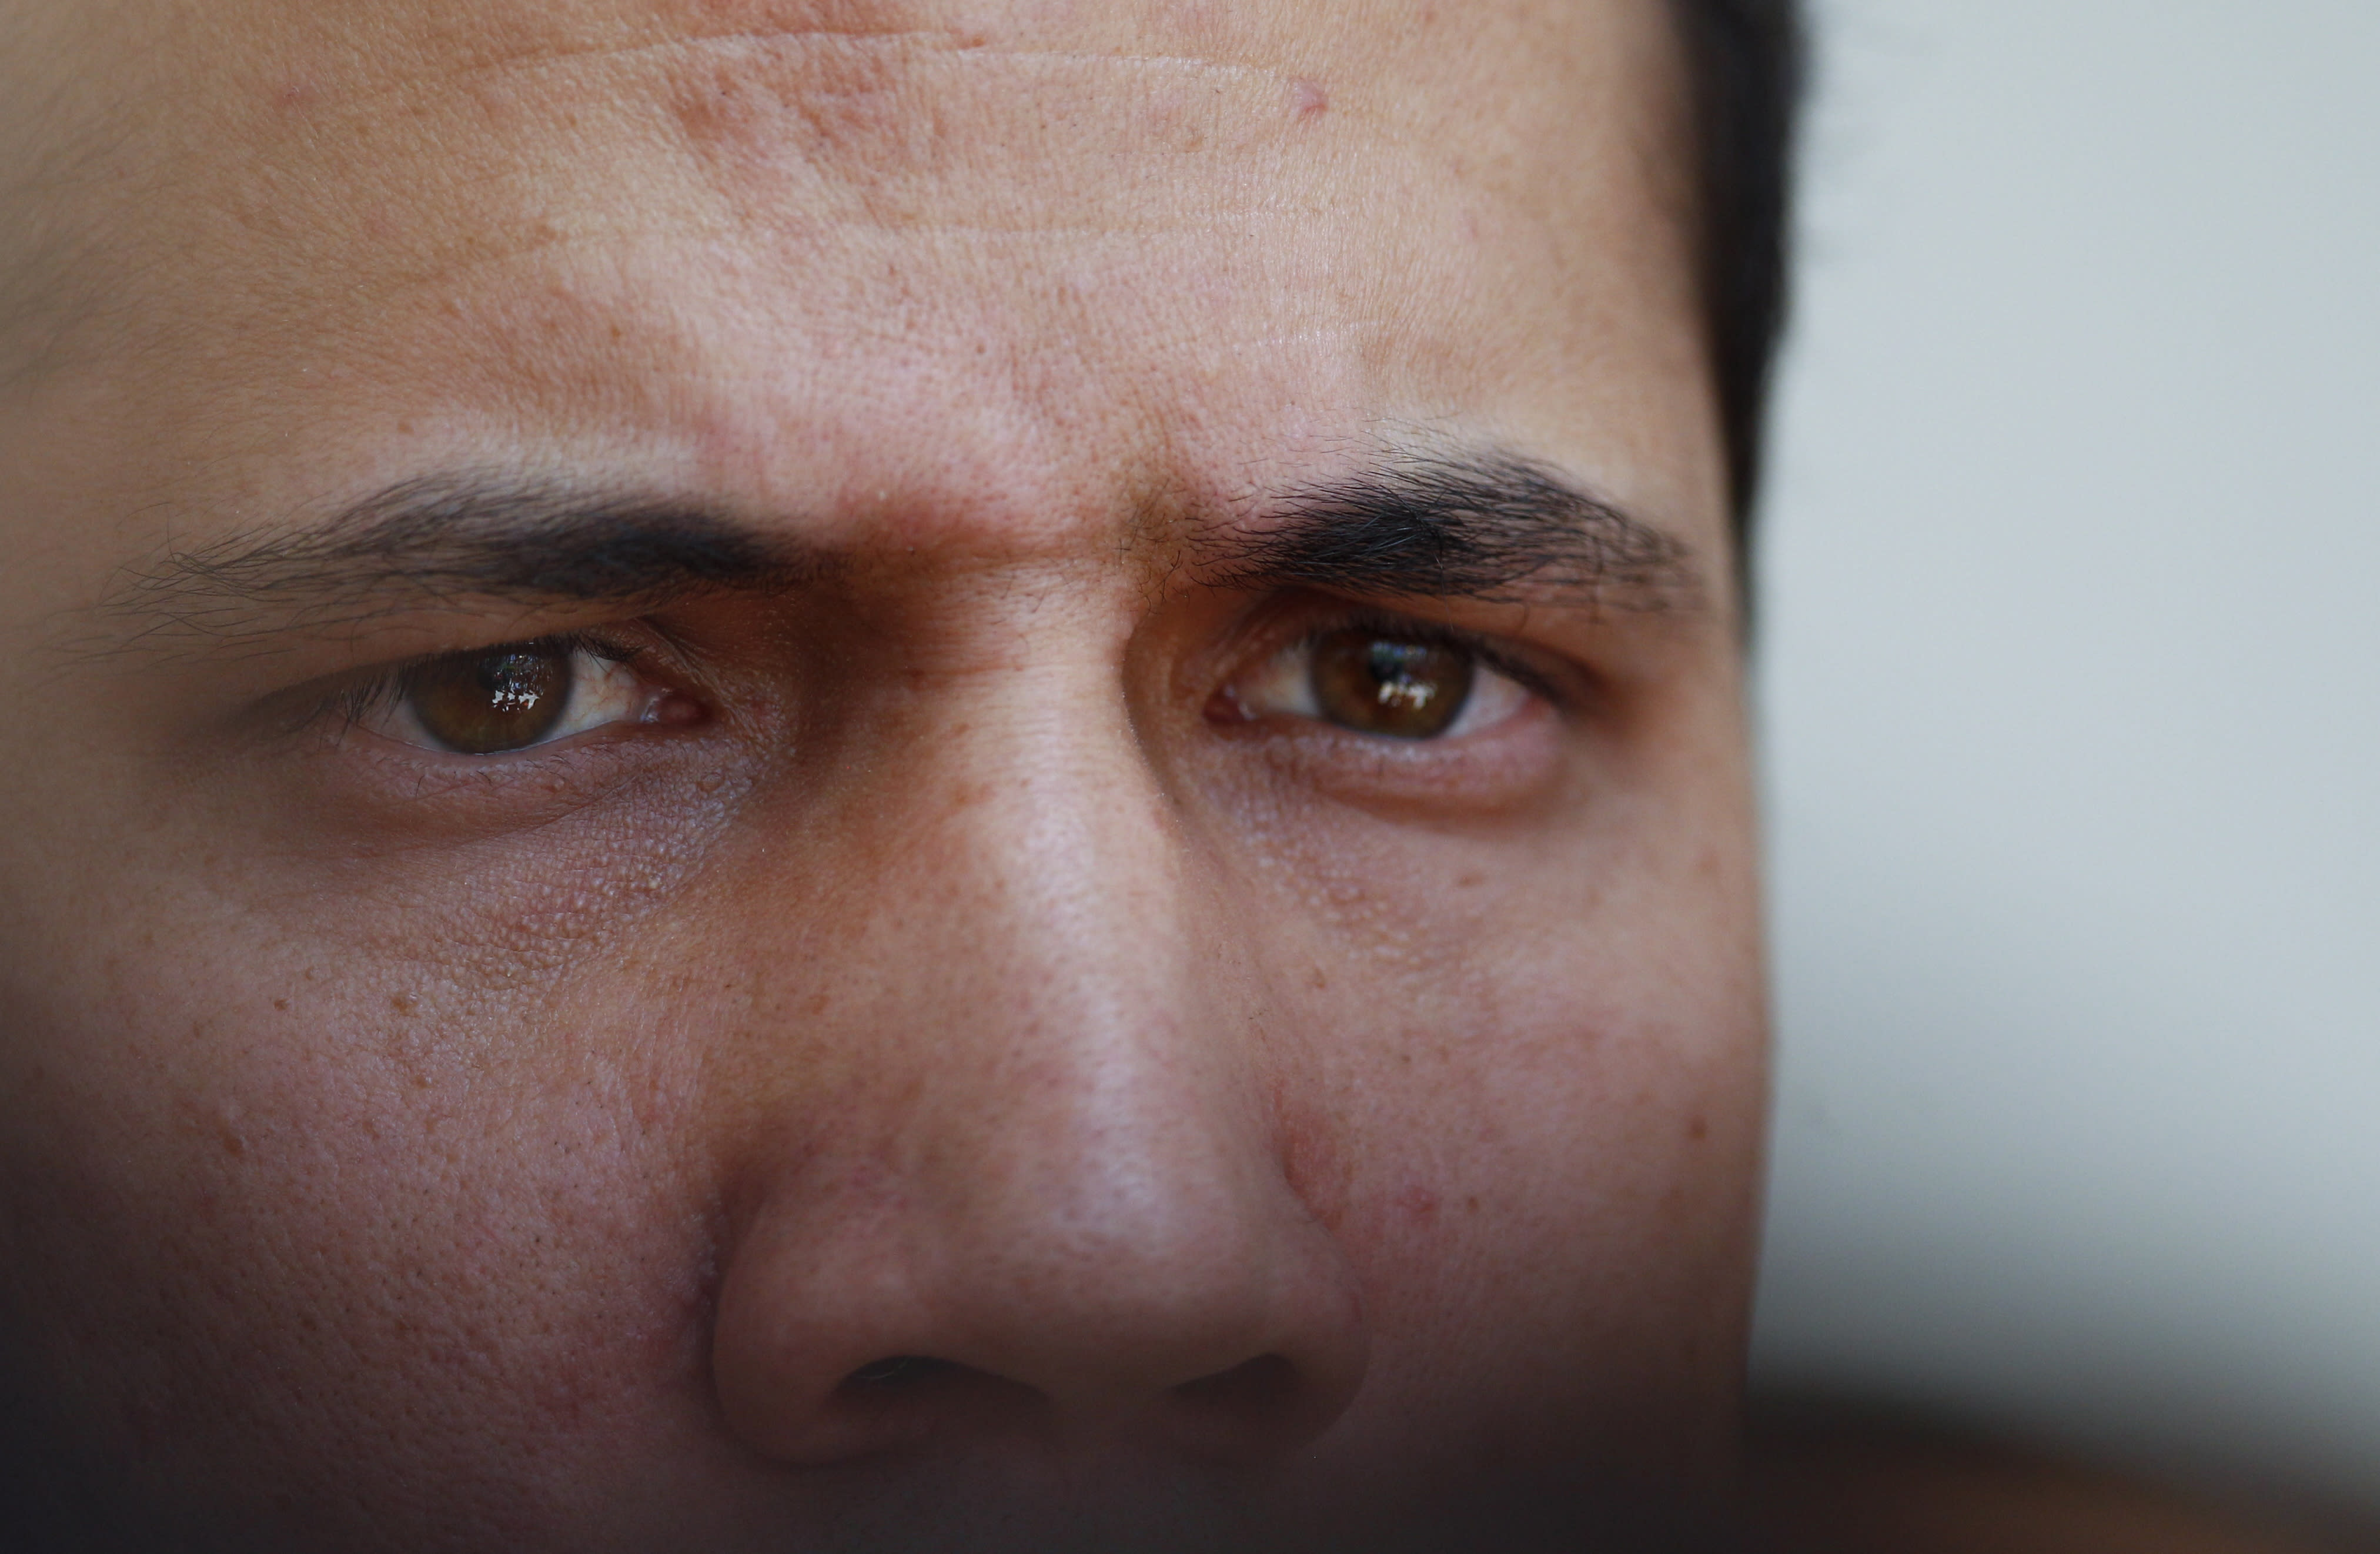 Opposition leader and self-proclaimed interim president of Venezuela, Juan Guaido, speaks to the press at the National Assembly in Caracas, Venezuela, Tuesday, Aug. 20, 2019. The opposition-controlled National Assembly meets every Tuesday, and today lawmakers met to discuss the government's bid to relieve hyperinflation. (AP Photo/Leonardo Fernandez)